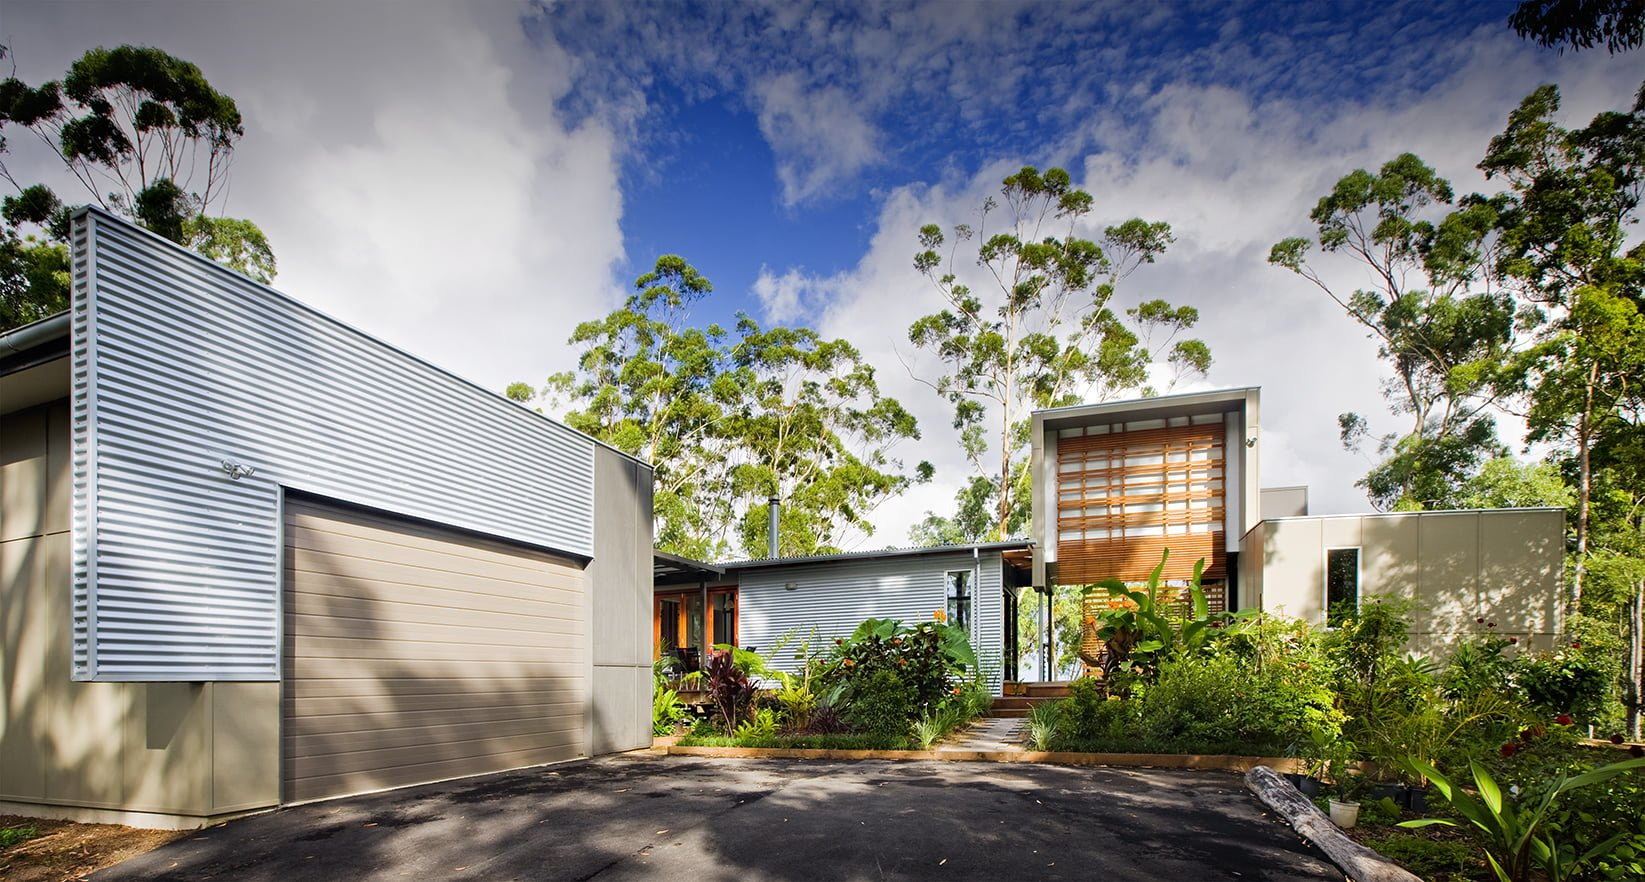 Storrs Road by Tim Stewart Architects